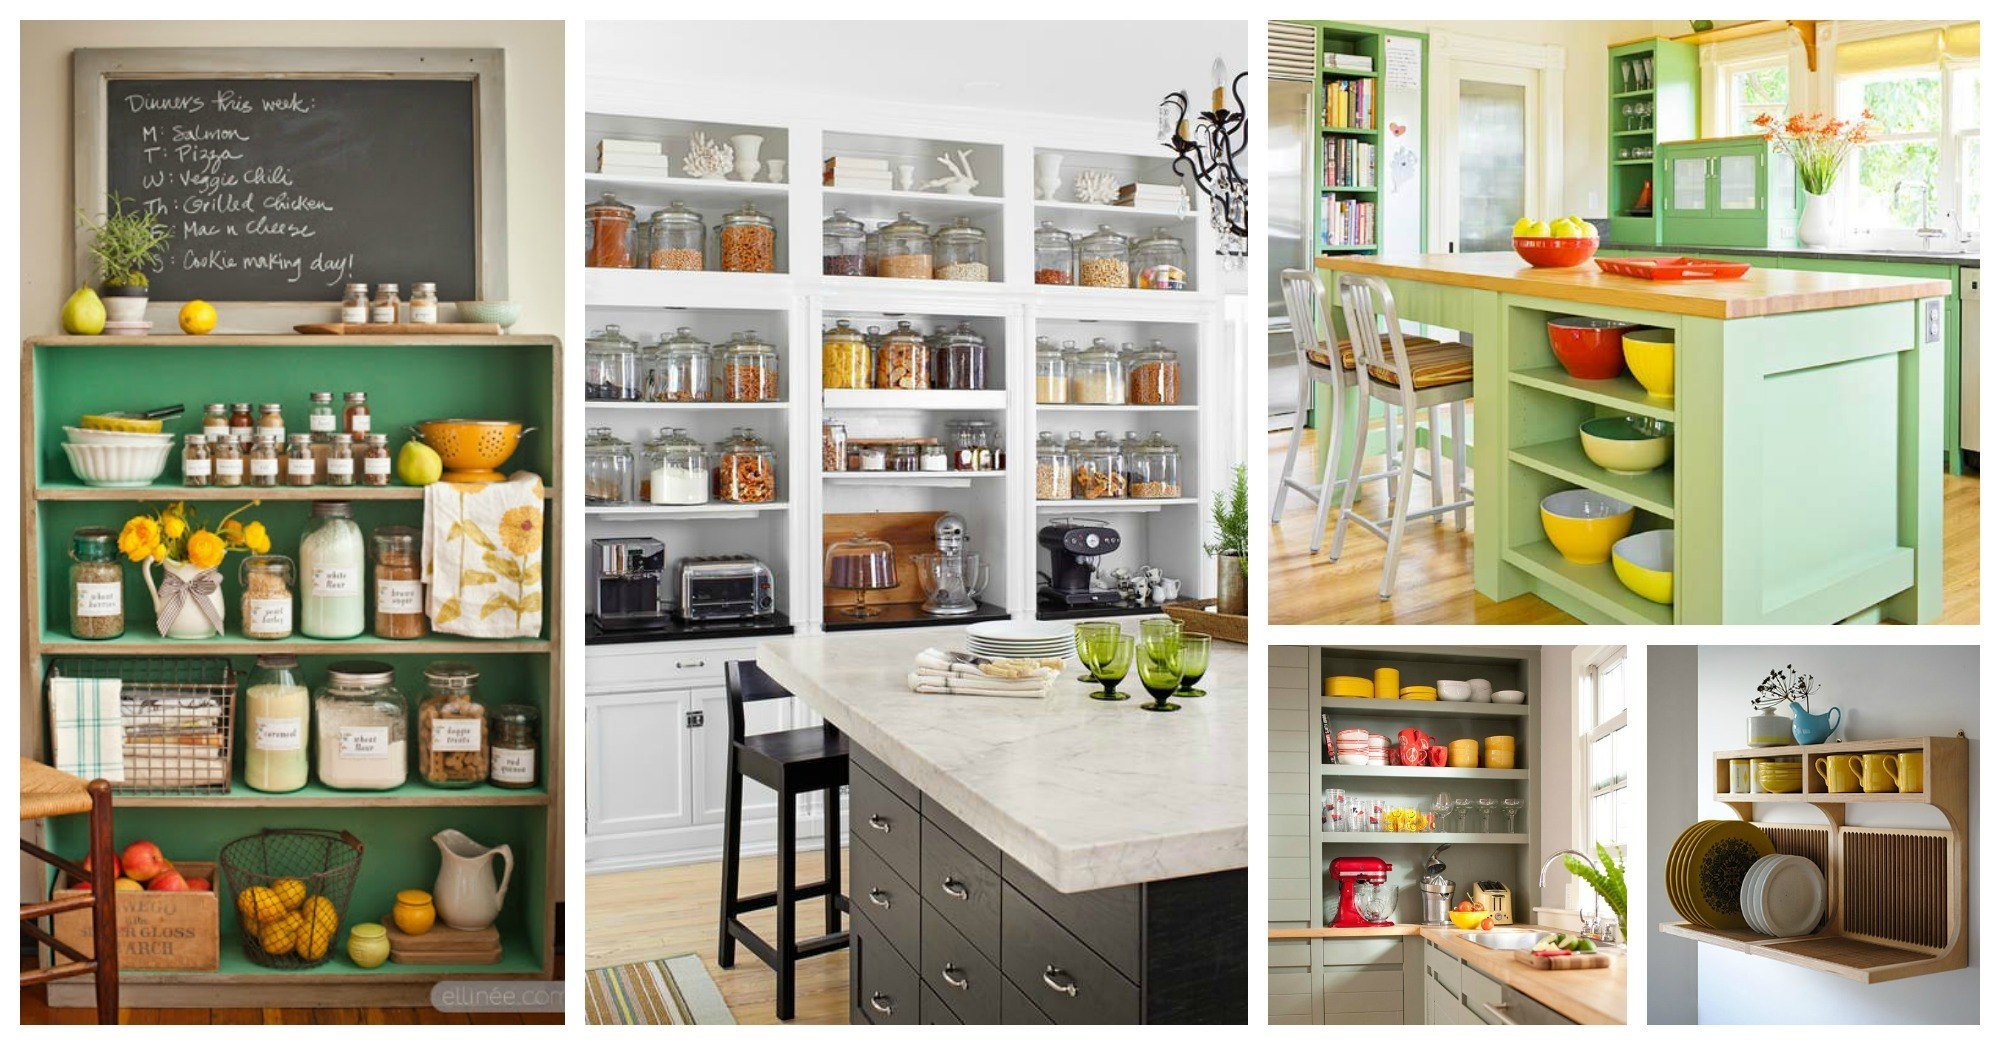 10 Amazing Kitchen Storage Ideas You Need to See